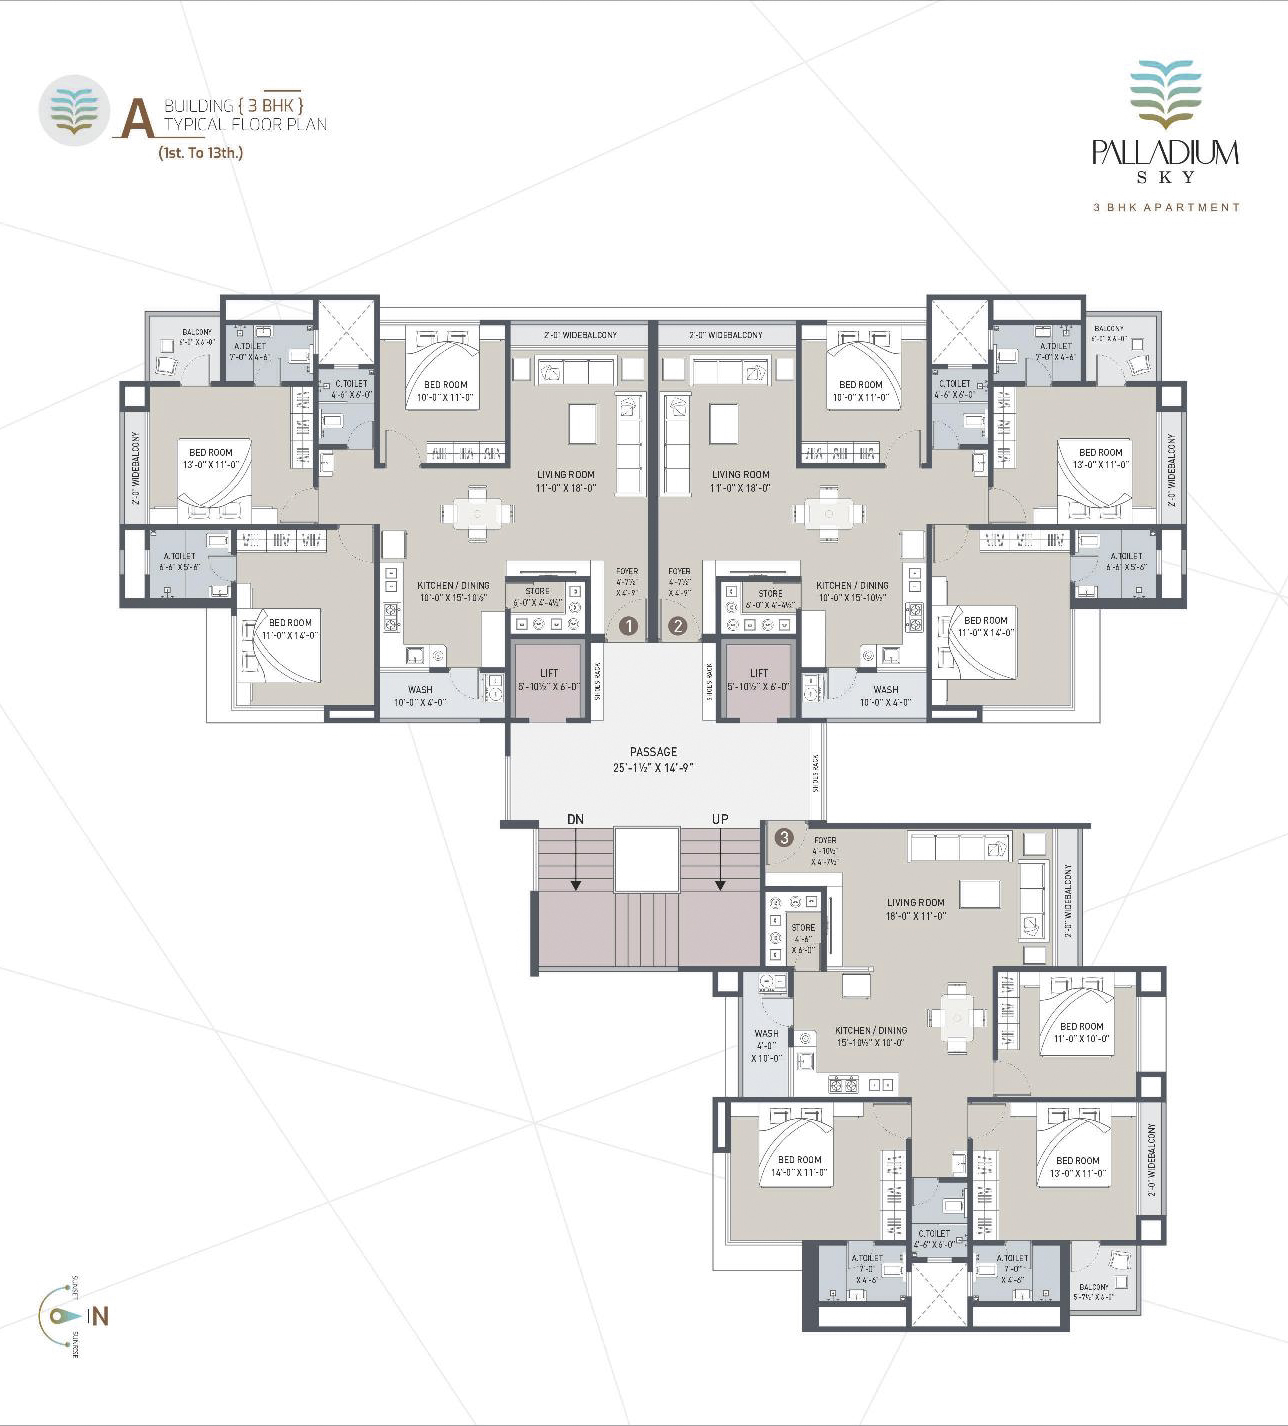 A Building Typical Floor Plan